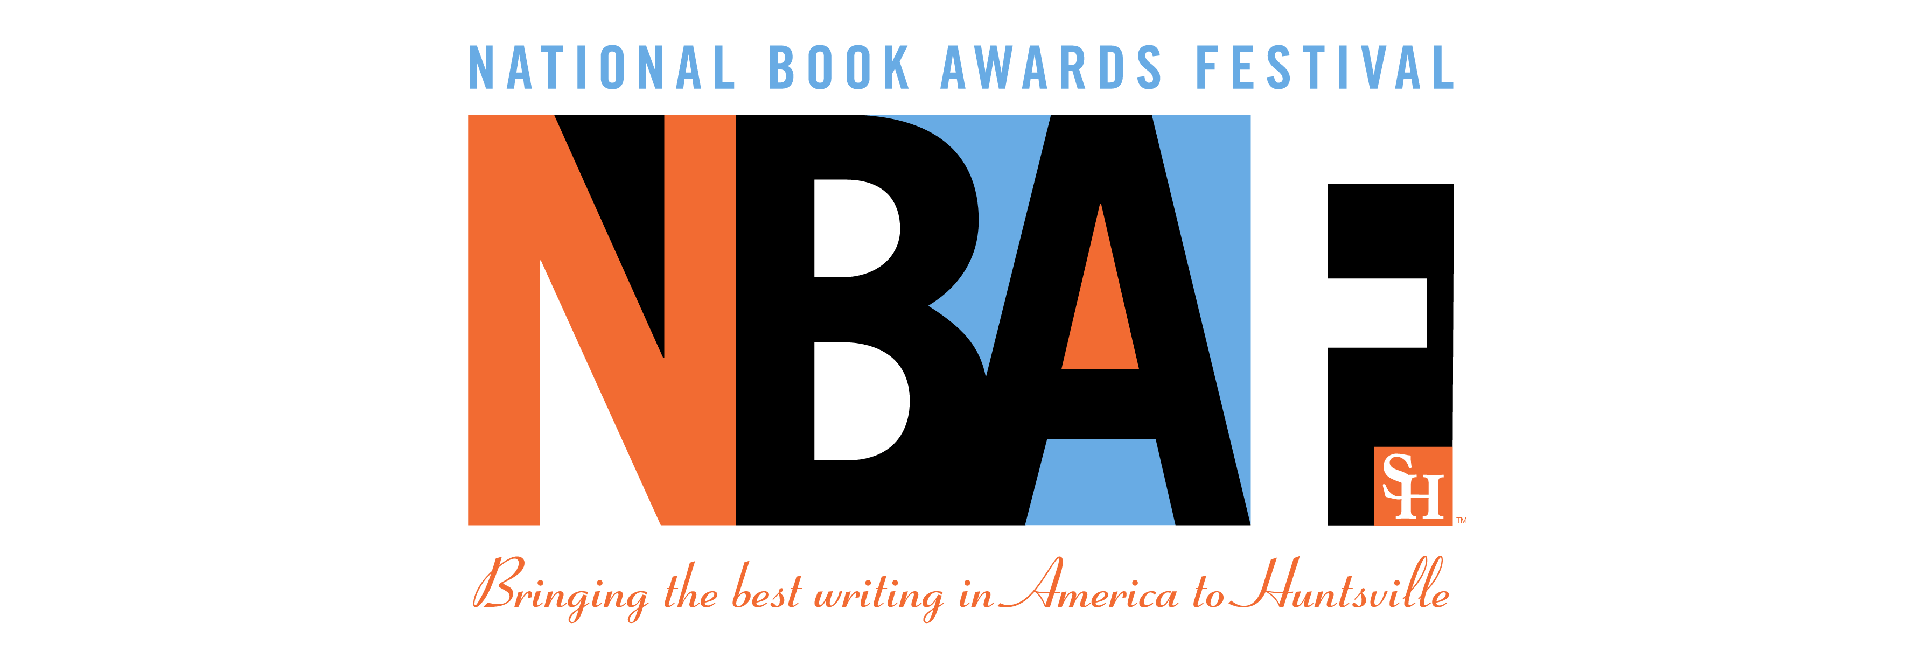 National Book Awards Festival - Bringing the best writing in America to Huntsville